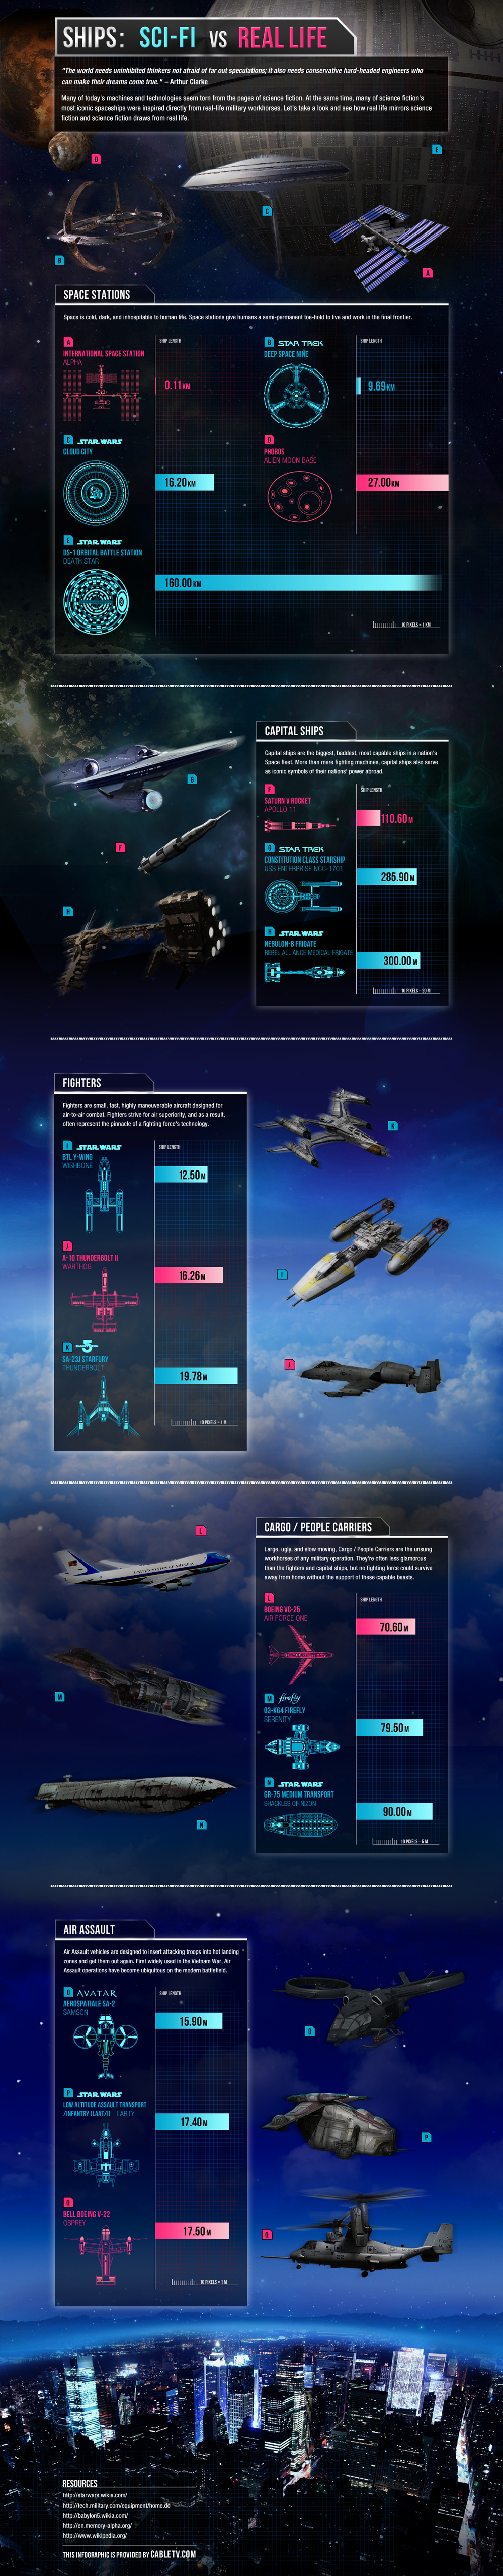 Sci-Fi Ships Vs Real Life Objects infographic